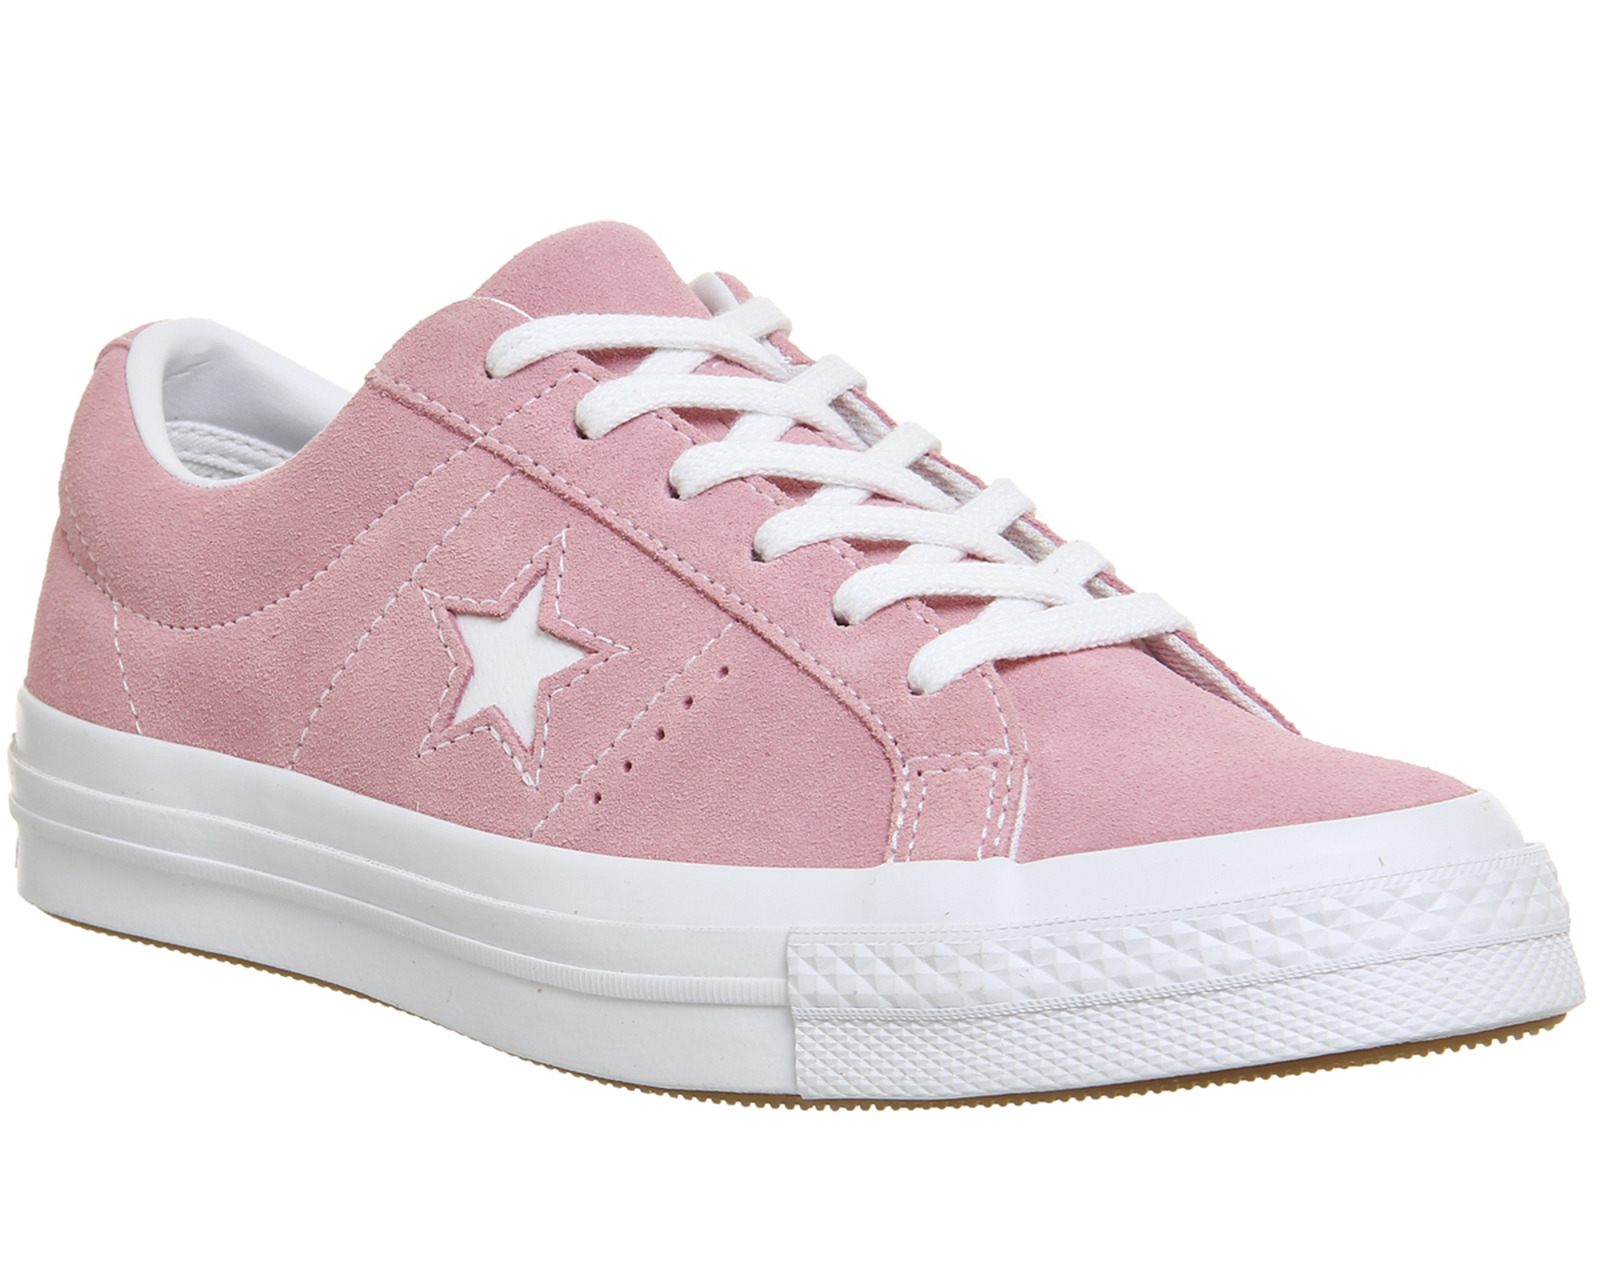 Womens Shoes Similar To Converse